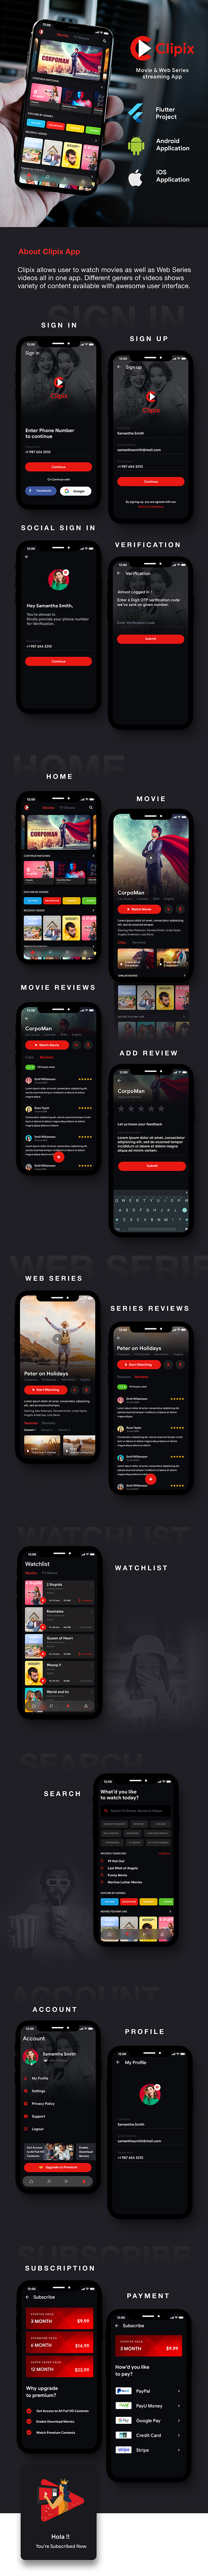 Movie Series Video Streaming Android App Template+ Video Streaming iOS App Template| Flutter| Clipix - 1